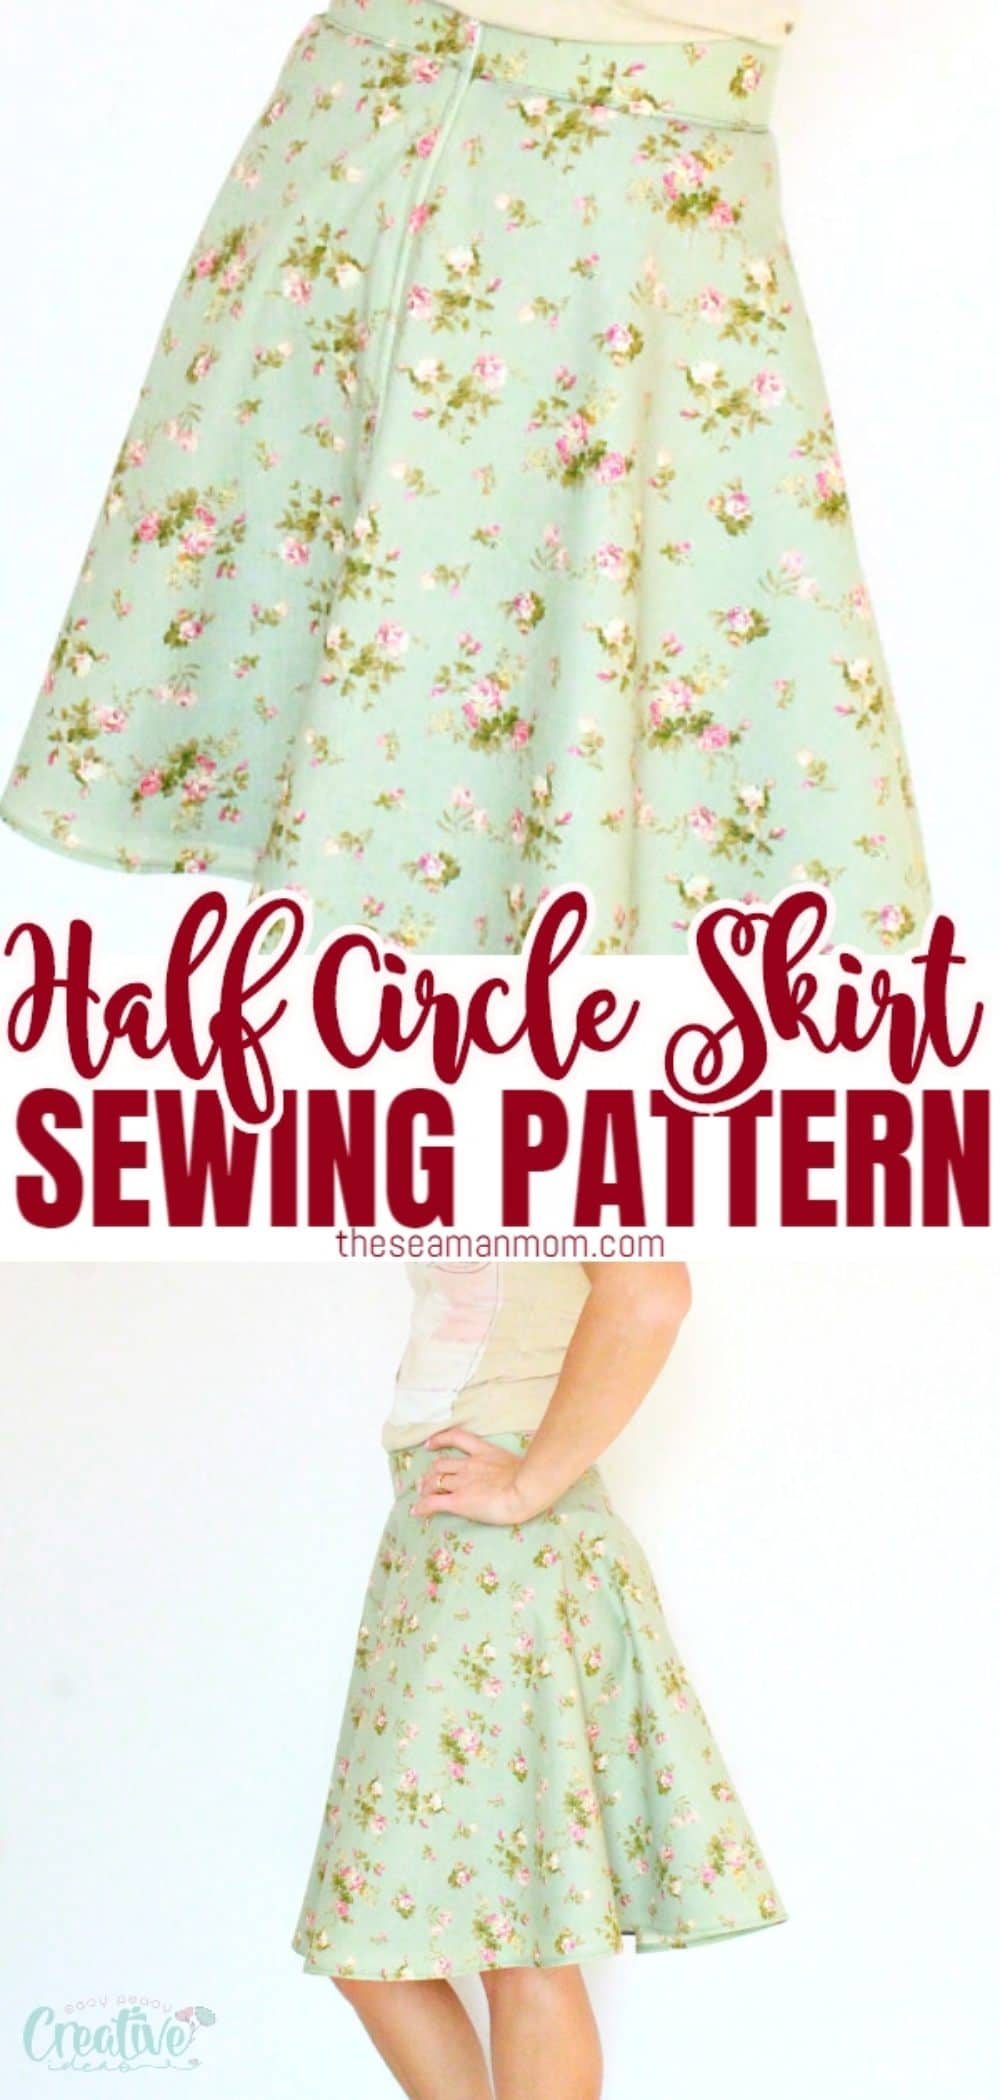 Making a lined skirt is insanely easy! With this simple tutorial for a half circle skirt with zipper and lining, you won't need a pattern to make a knee length skirt that fits you perfectly! via @petroneagu